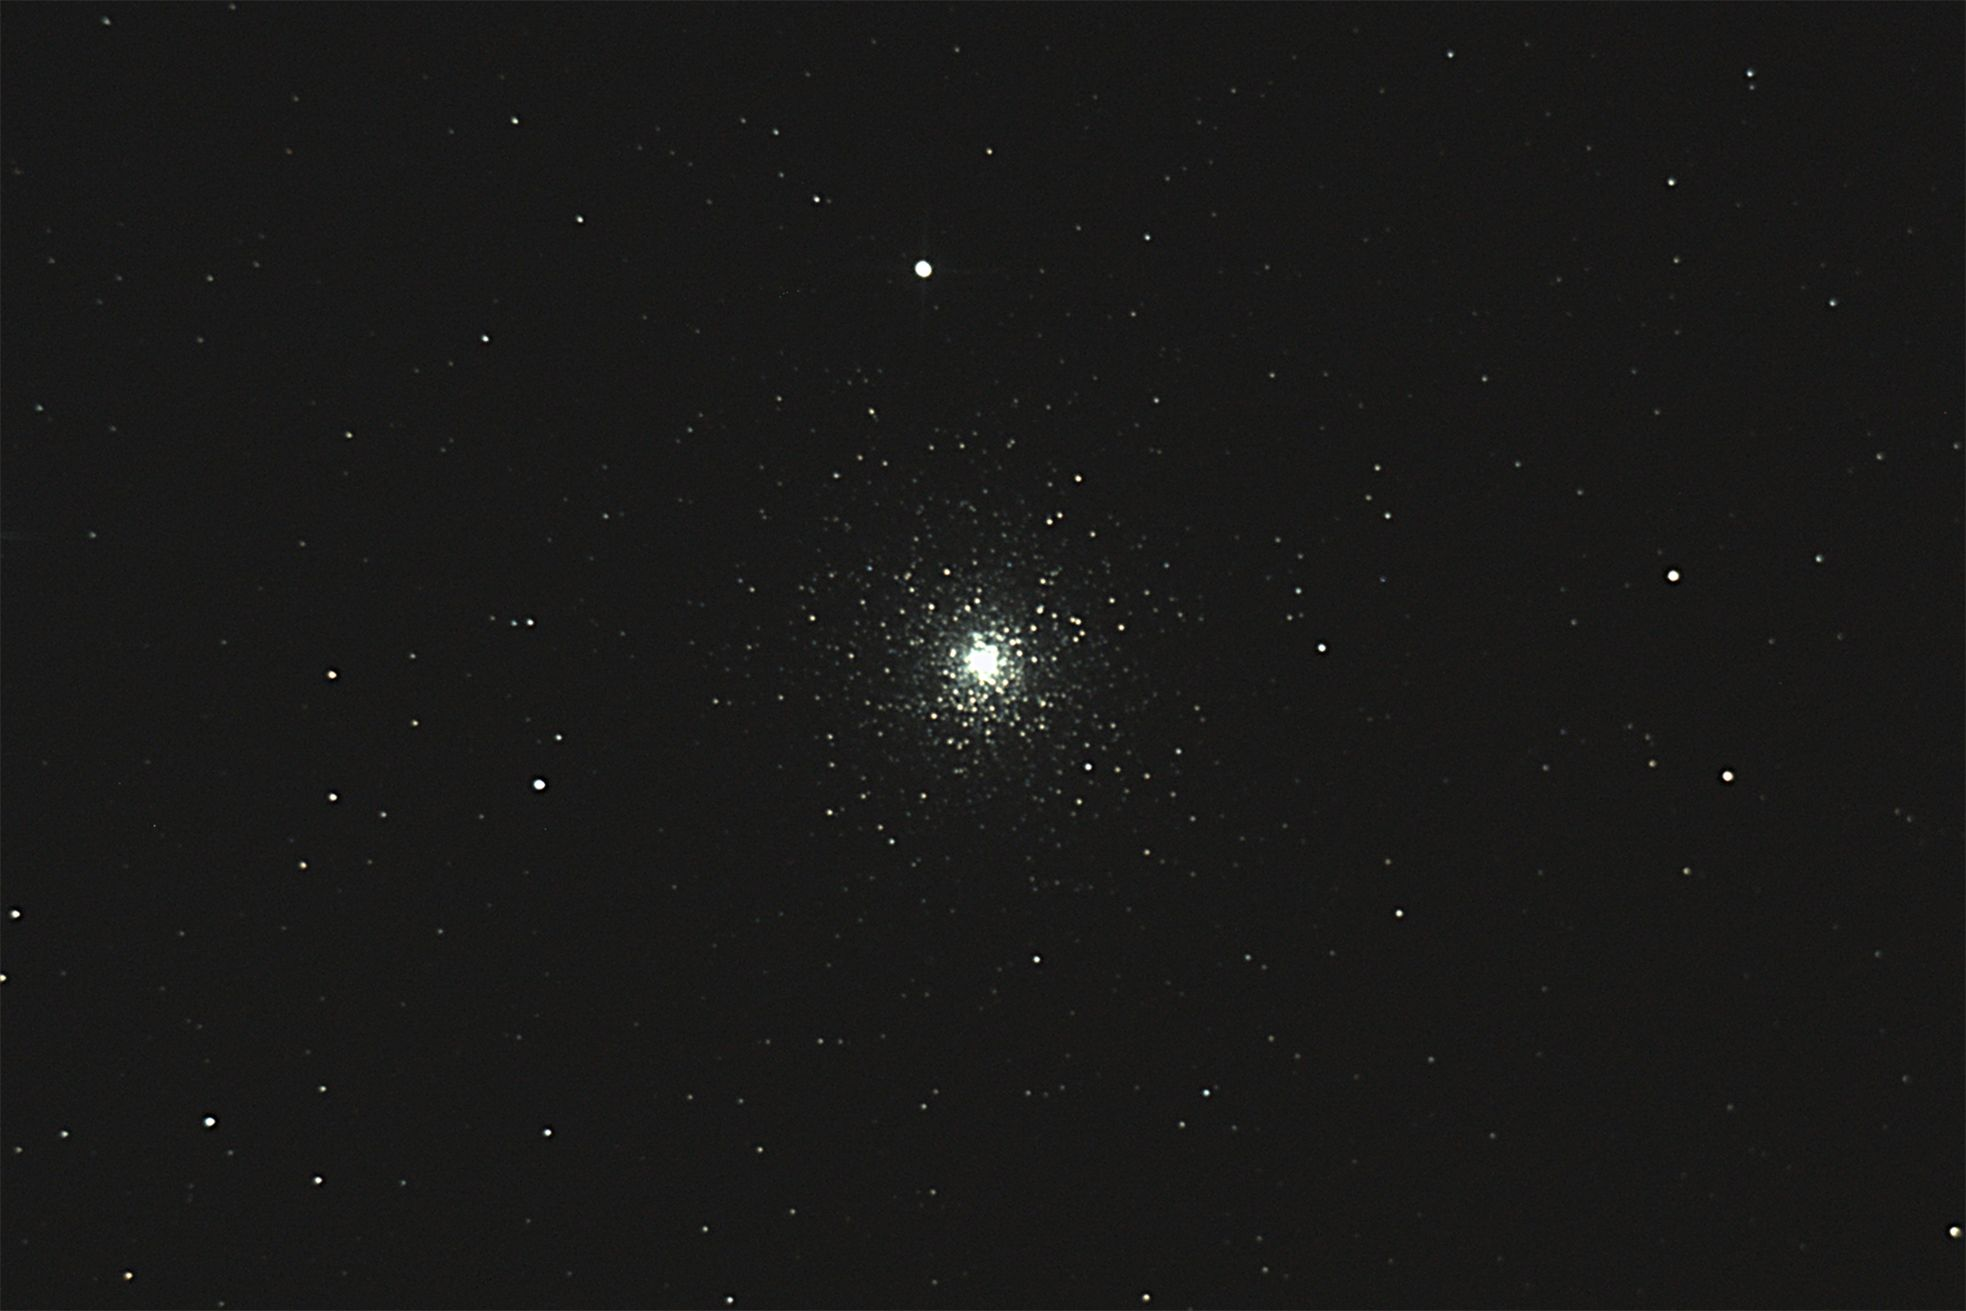 M15 - The Great Pegasus Cluster